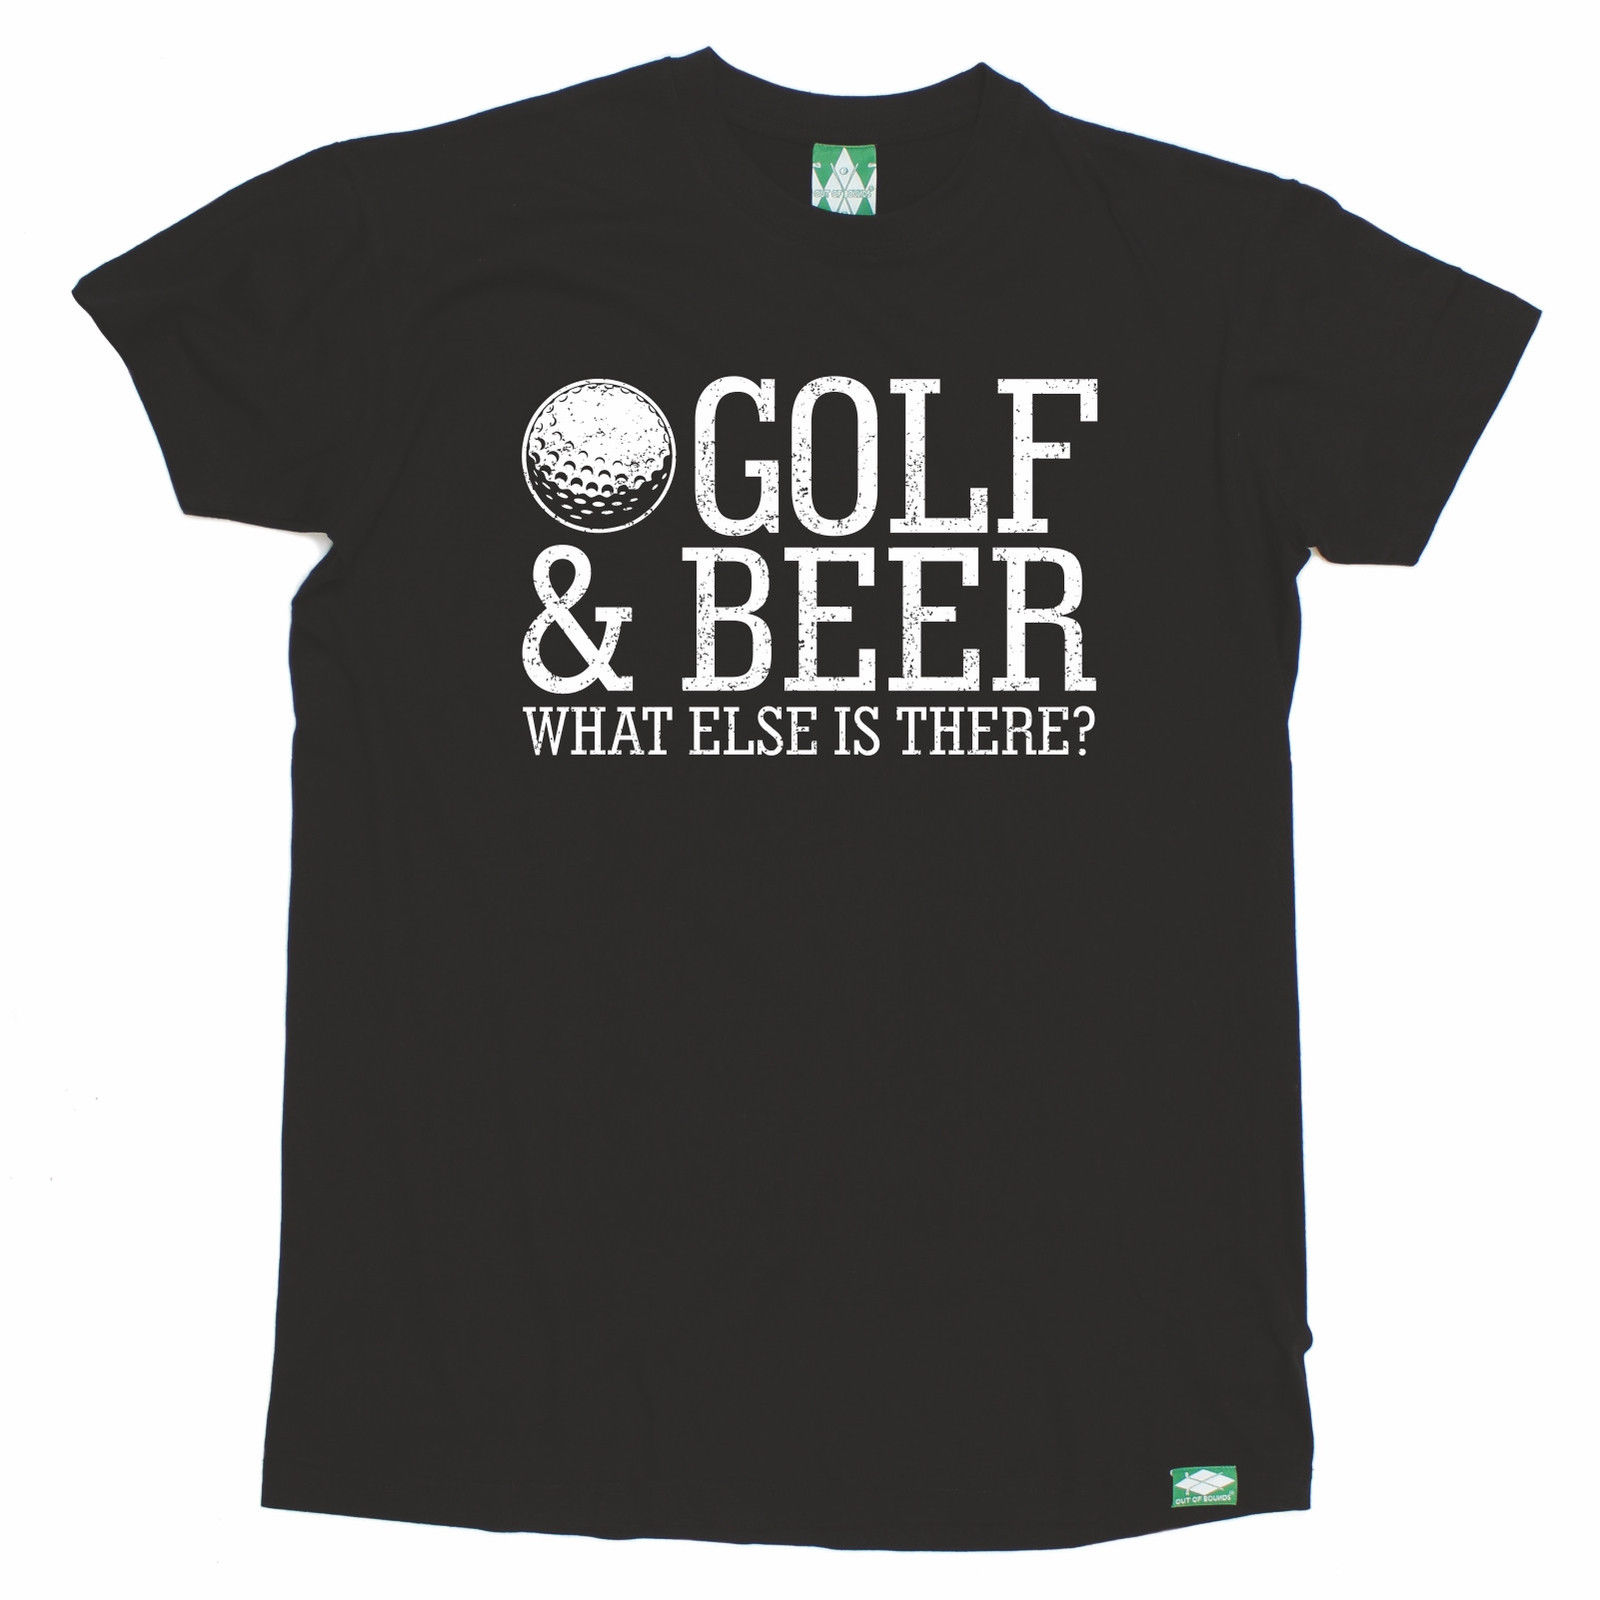 Golfer & Beer What Else Is There T-SHIRT Golfer Golfing Funny Birthday Gift 123t Short Sleeve Tshirt Cotton T Shirts